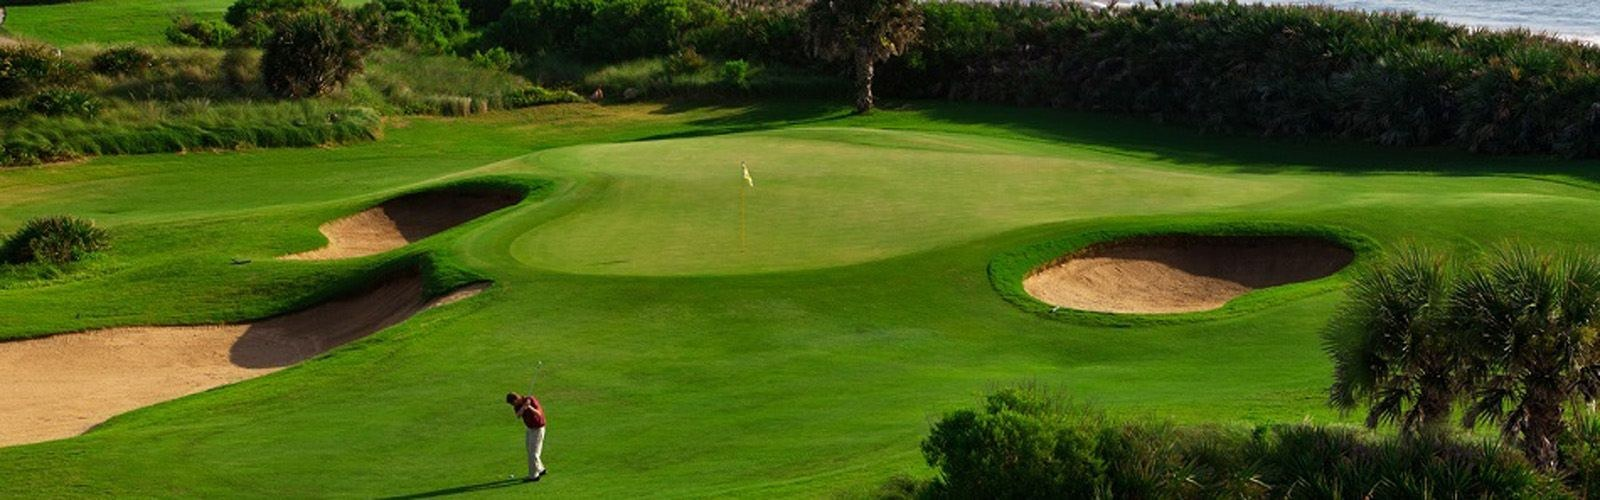 Golf Courses For Sale-Approach to Green